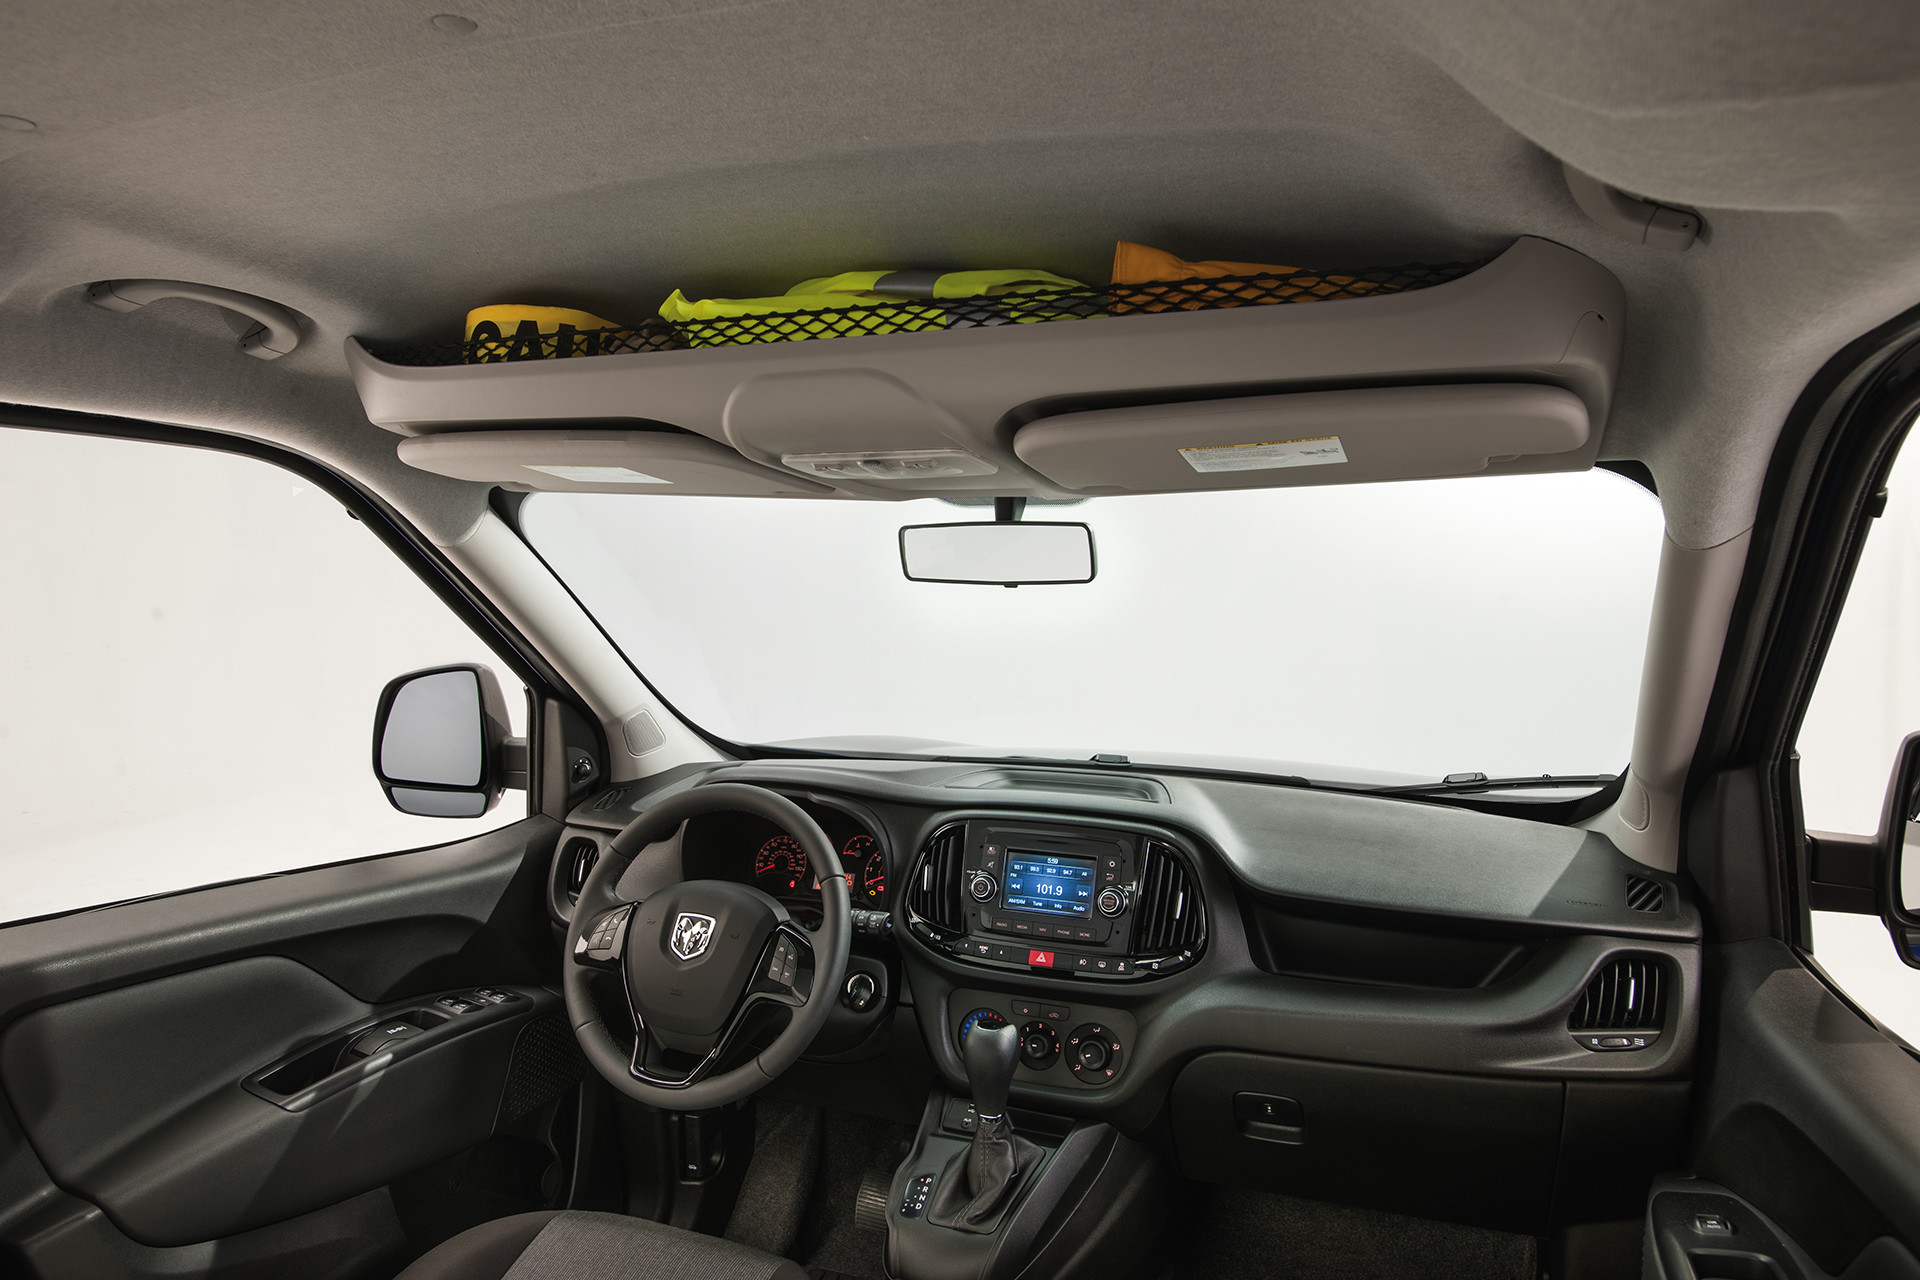 2019 Ram ProMaster City cockpit and overhead storage bins